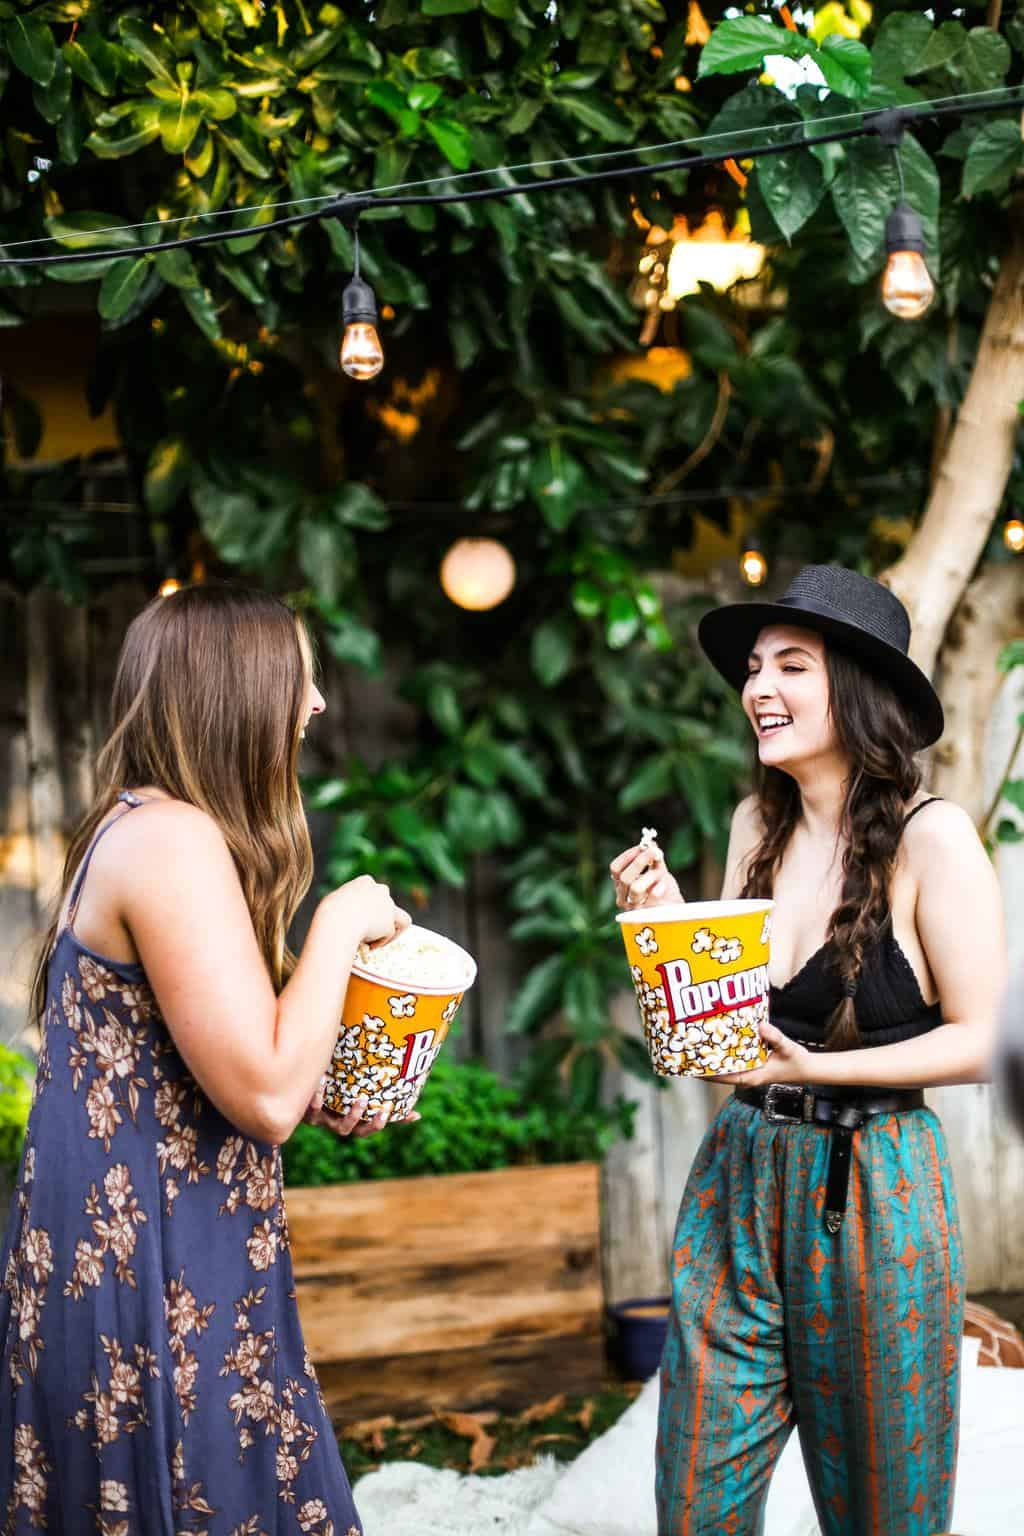 Two girls laughing throwing popcorn at each other at a backyard movie night.